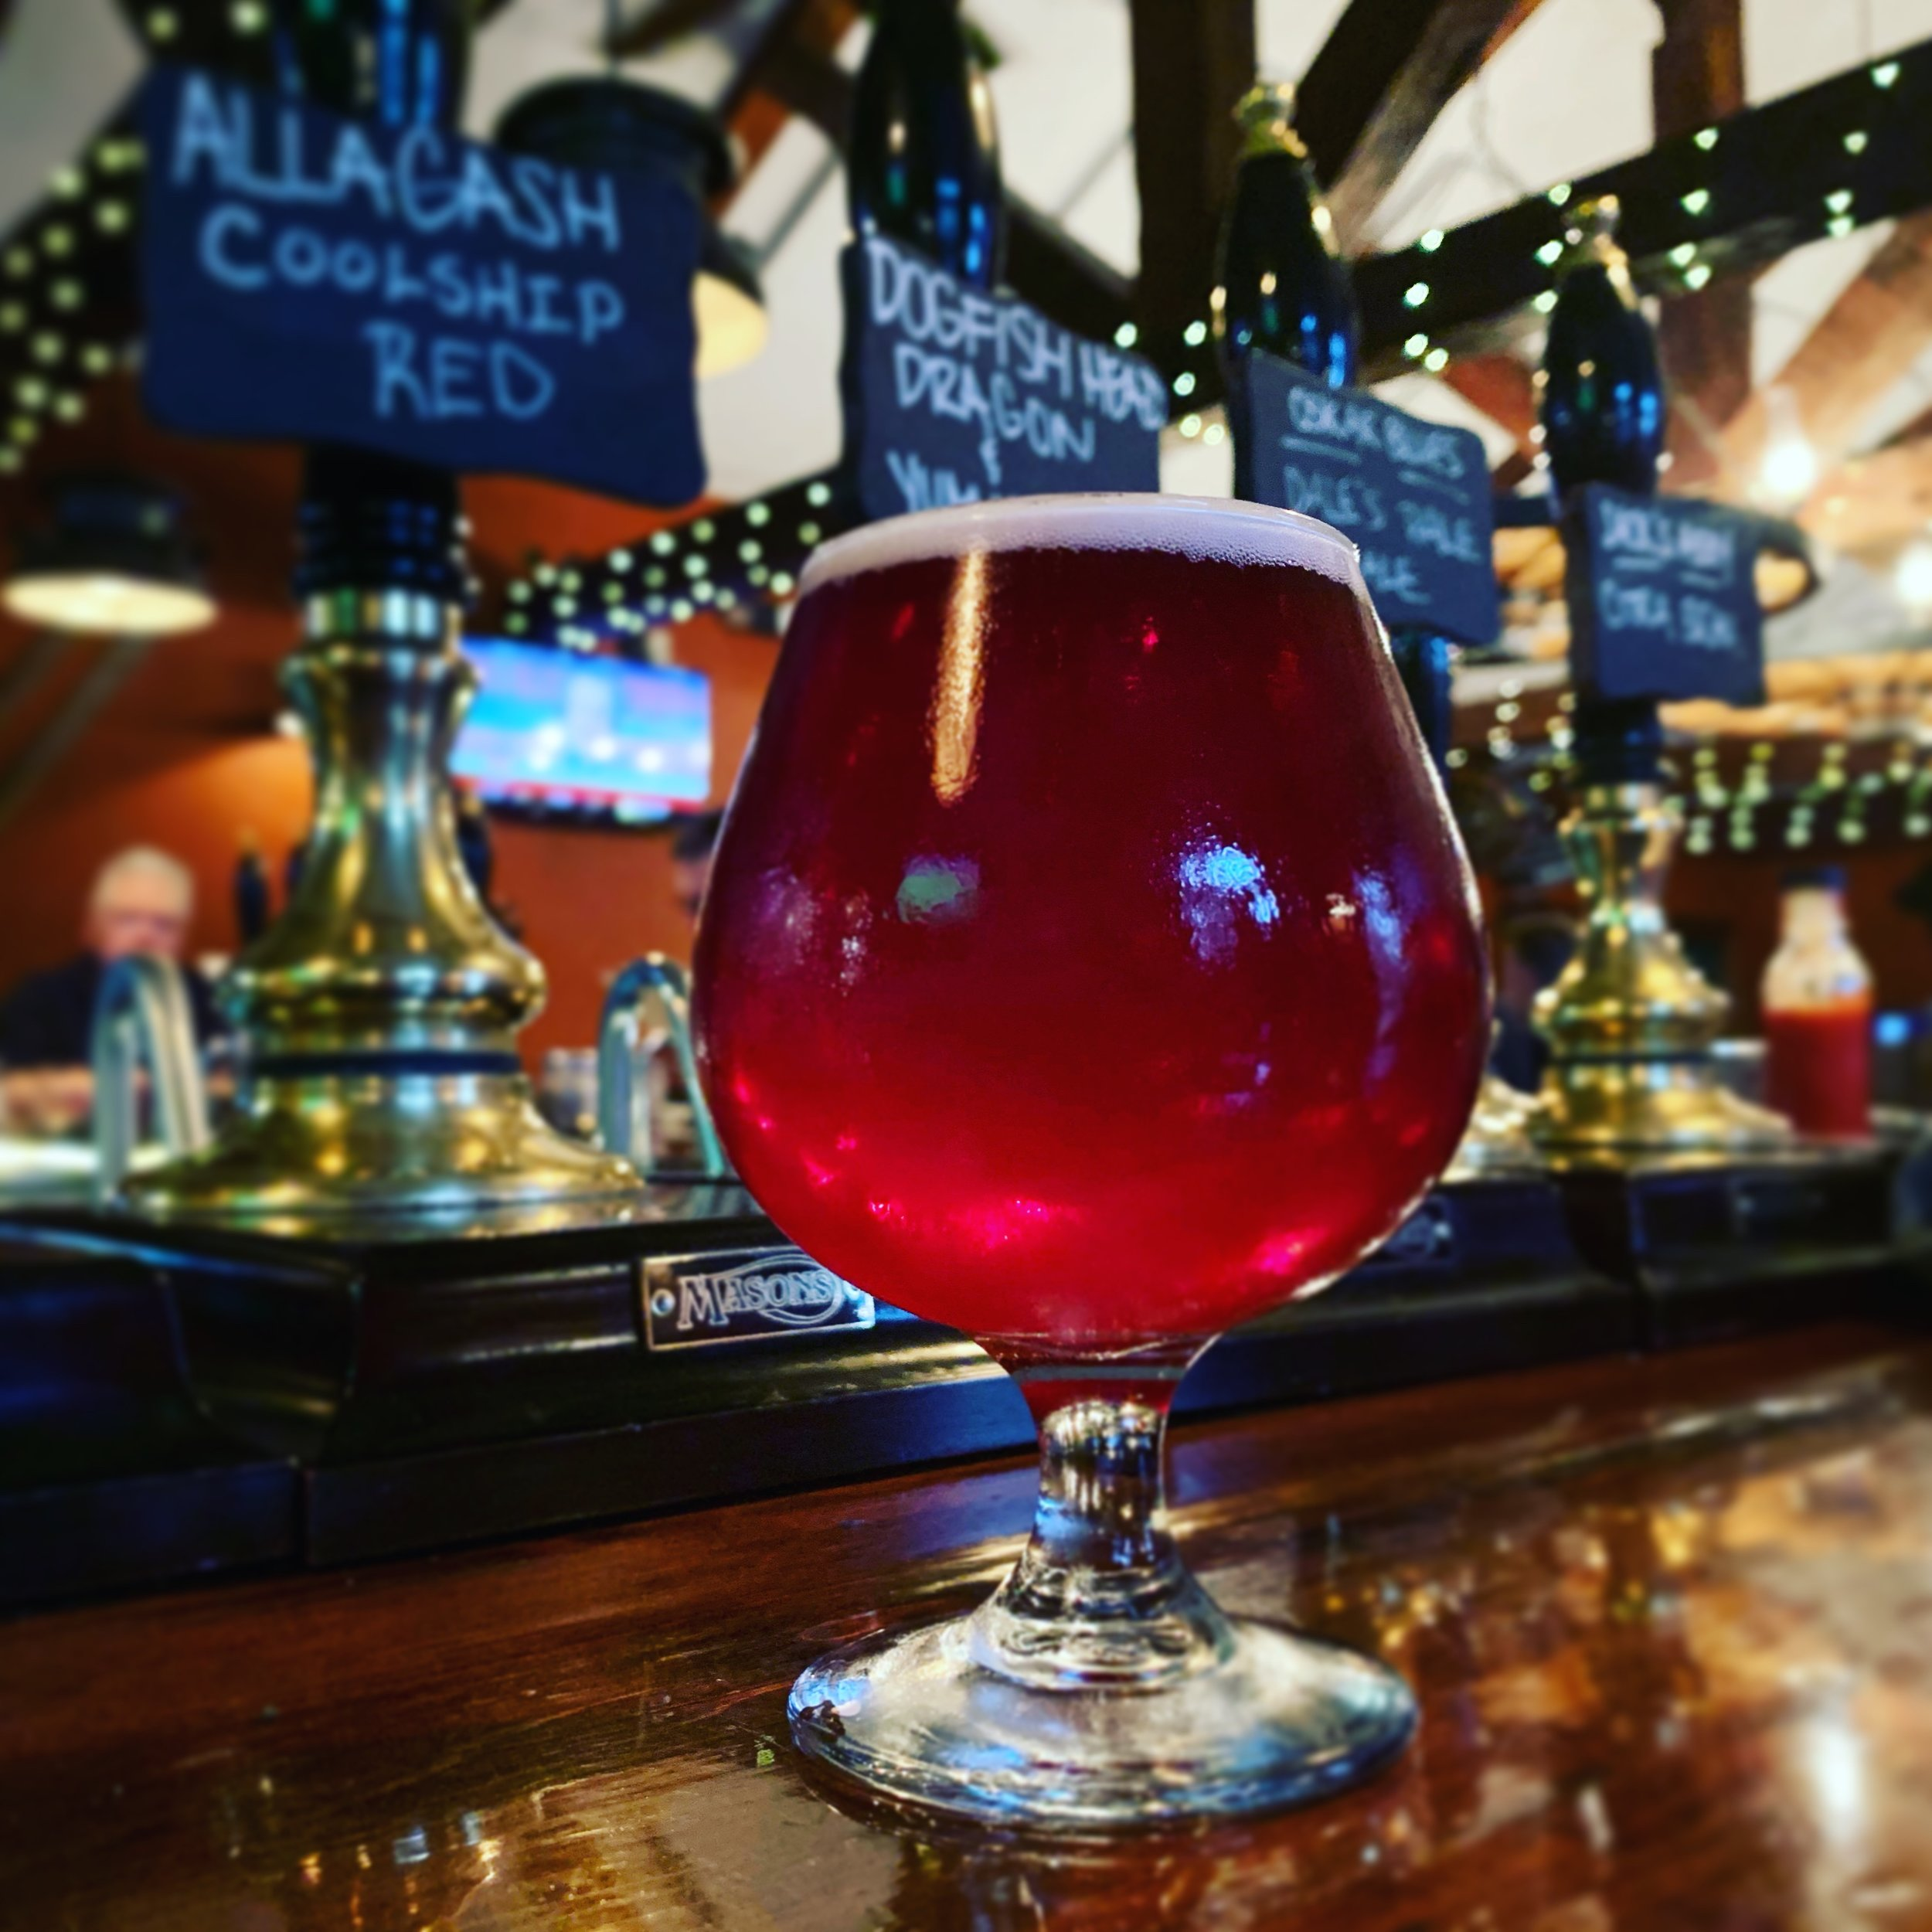 Allagash Coolship Red at the Latham House Tavern